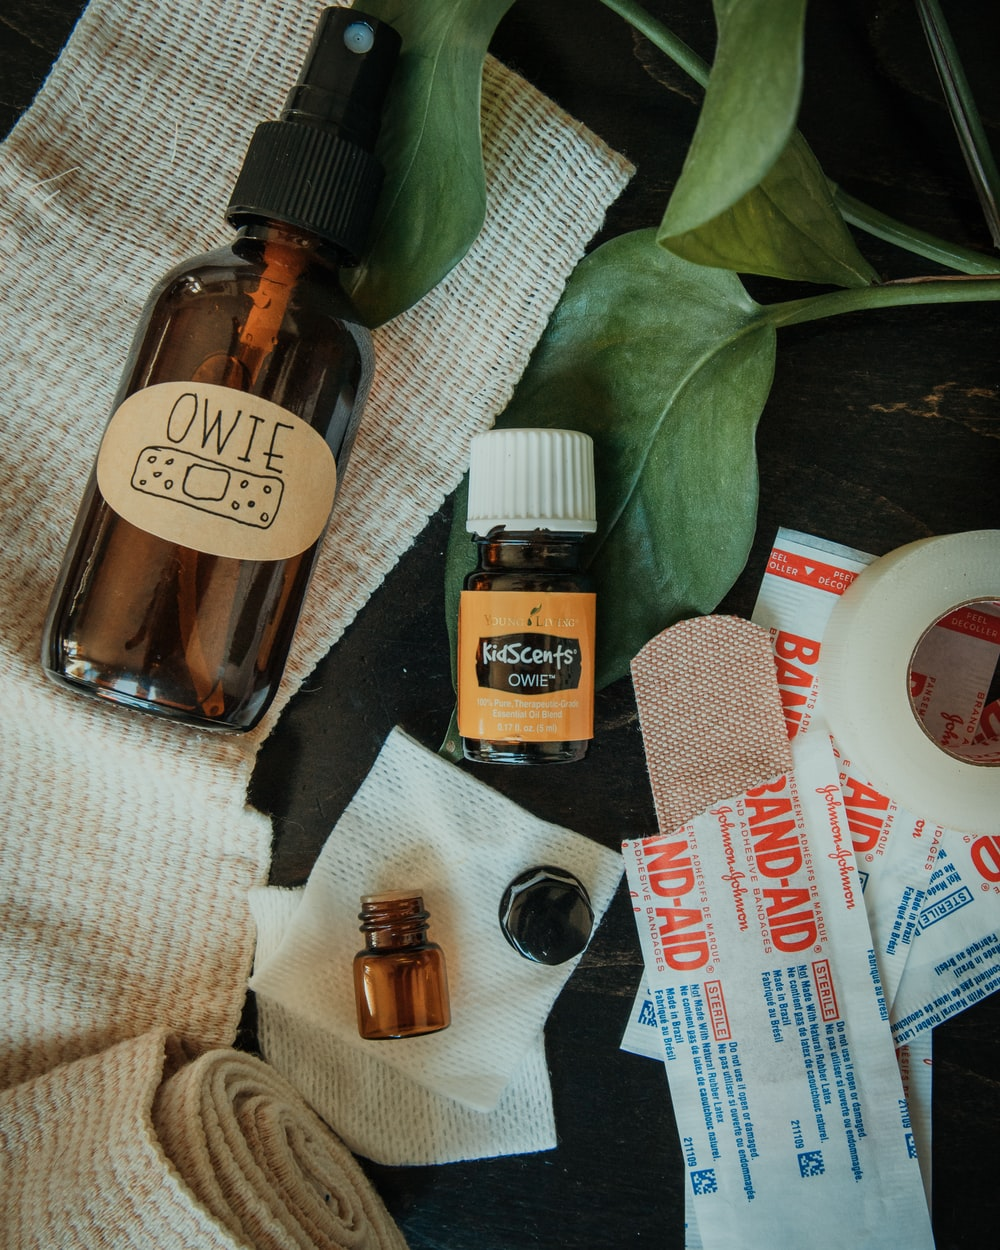 Young Living Essential Oils (Owie) | HD photo by Nicholas